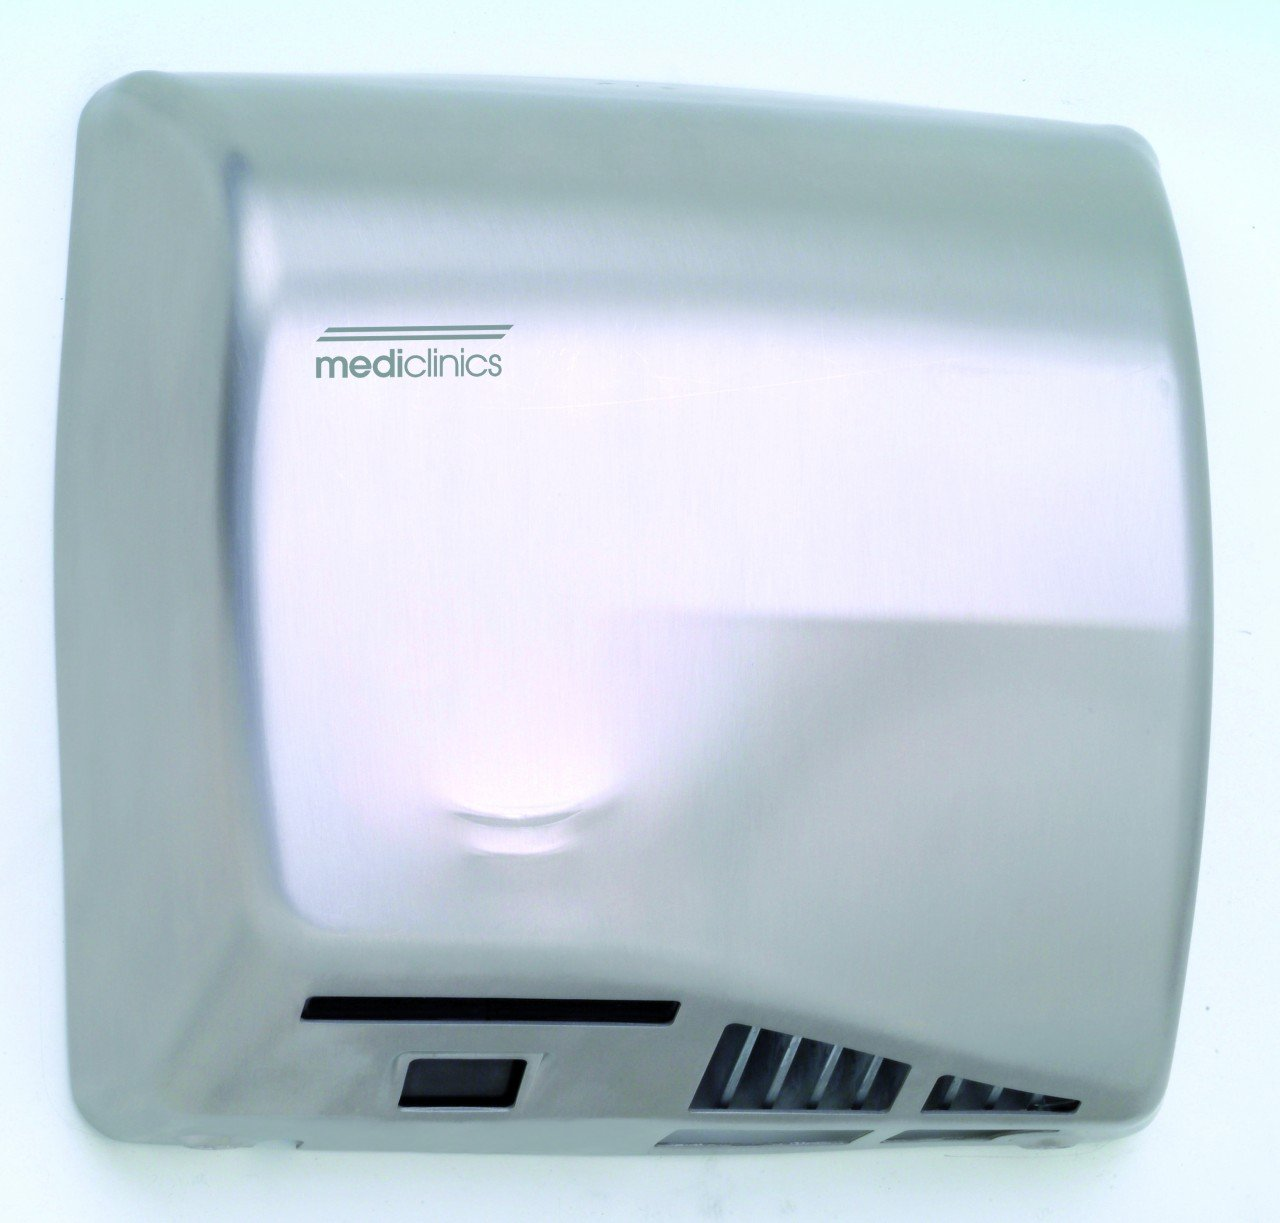 Saniflow M06ACS Speedflow Automatic Hand Dryer, Stainless Steel One-piece Cover Satin Finish, Universal Voltage, Maximum Robustness and Vandal-proof, Suitable for Very High Traffic Facilities